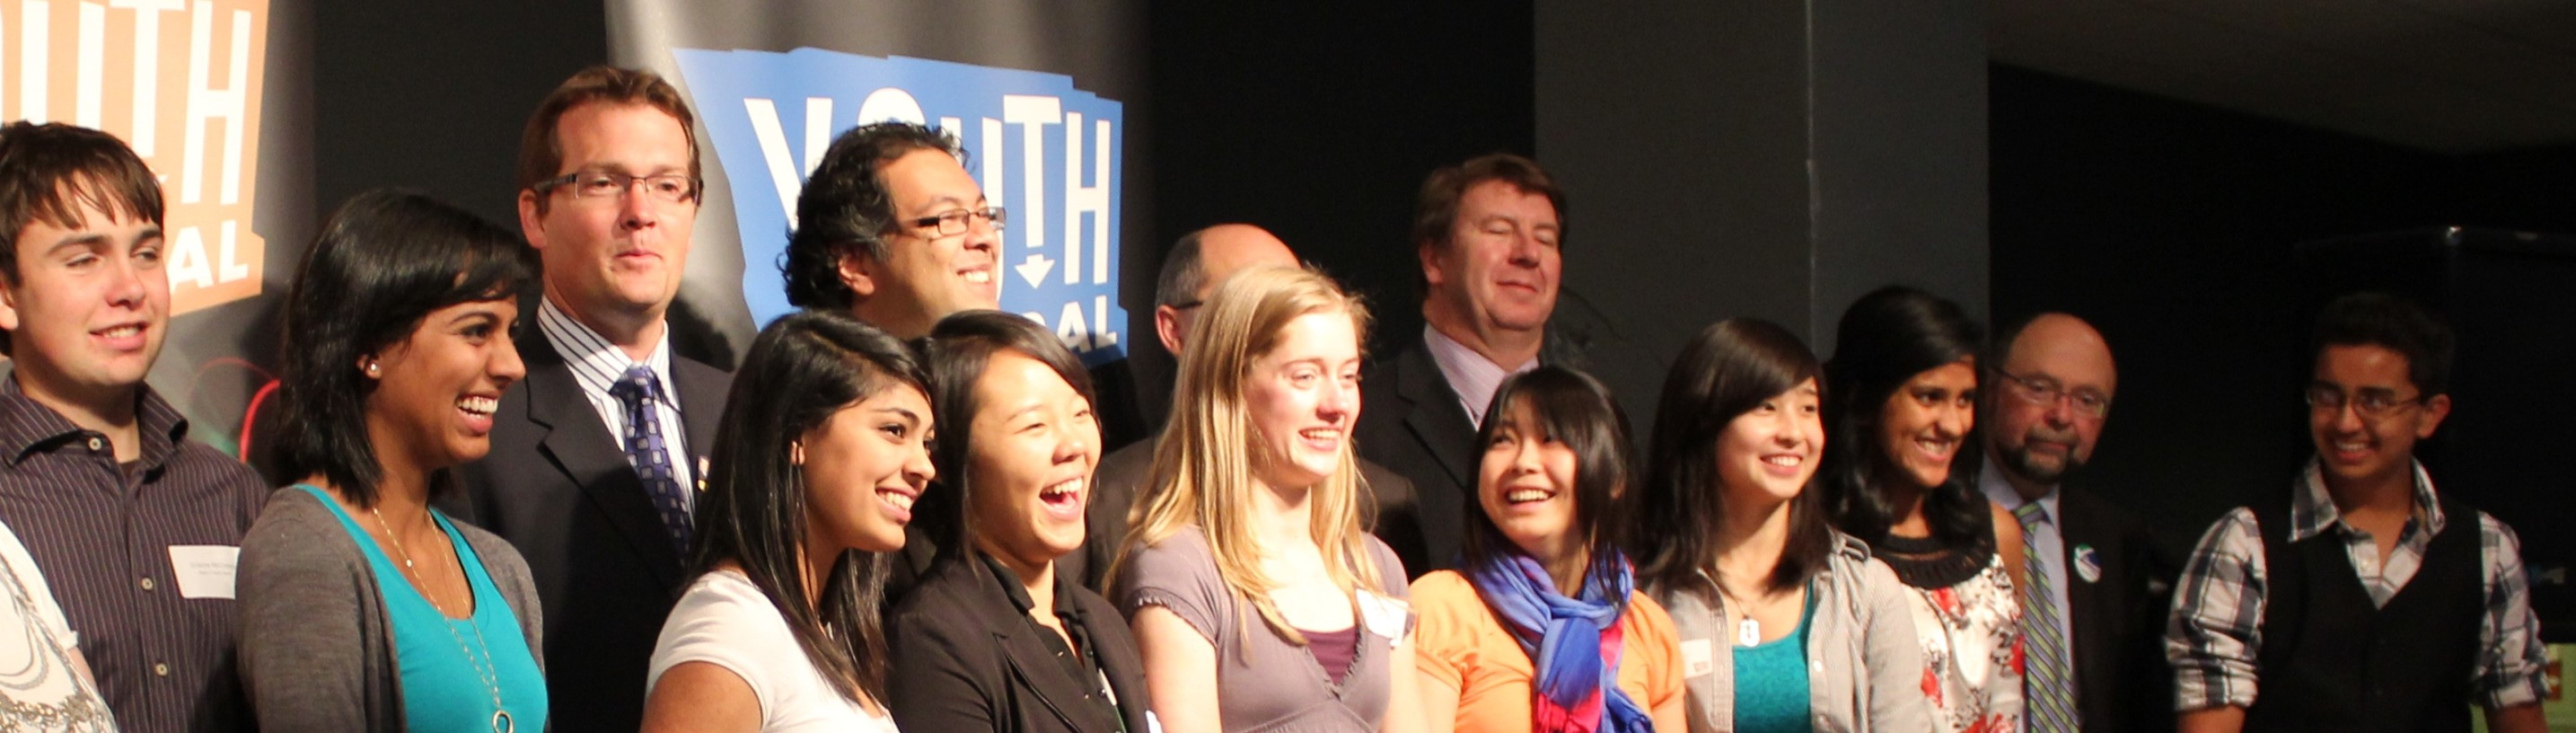 Mayor's Youth Forum a Hit